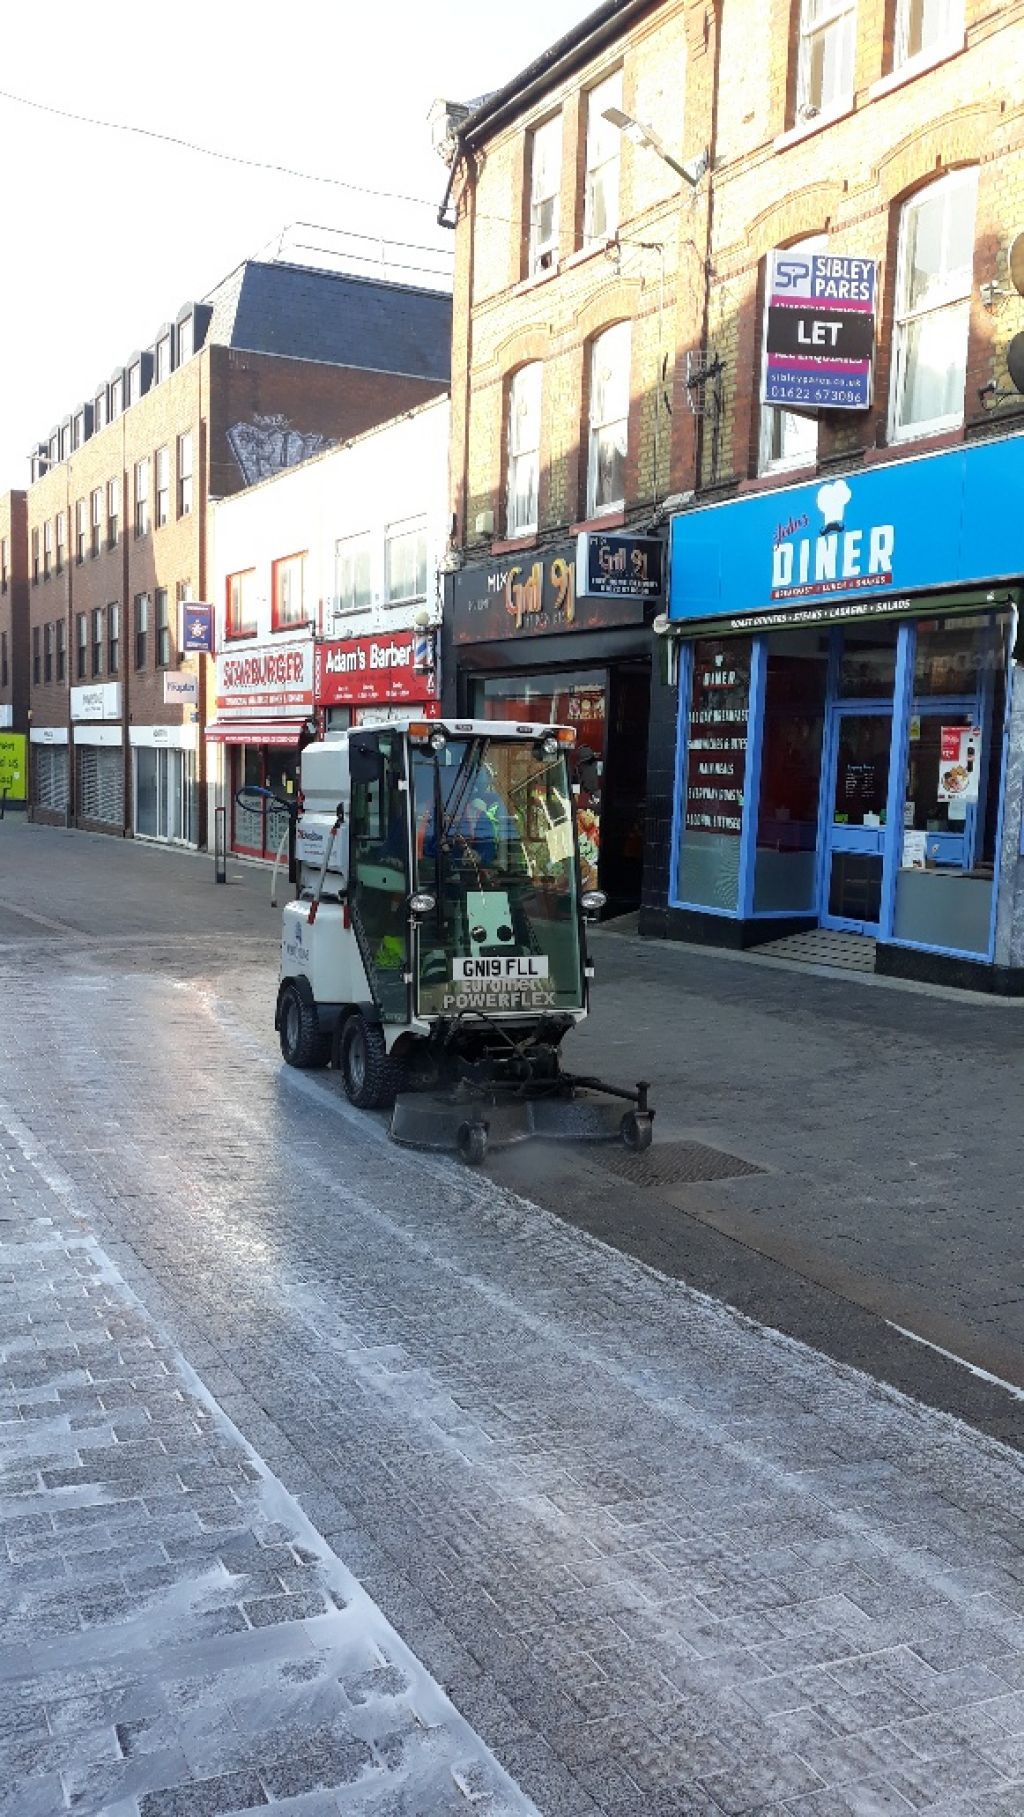 Routine Street cleansing to go ahead as planned